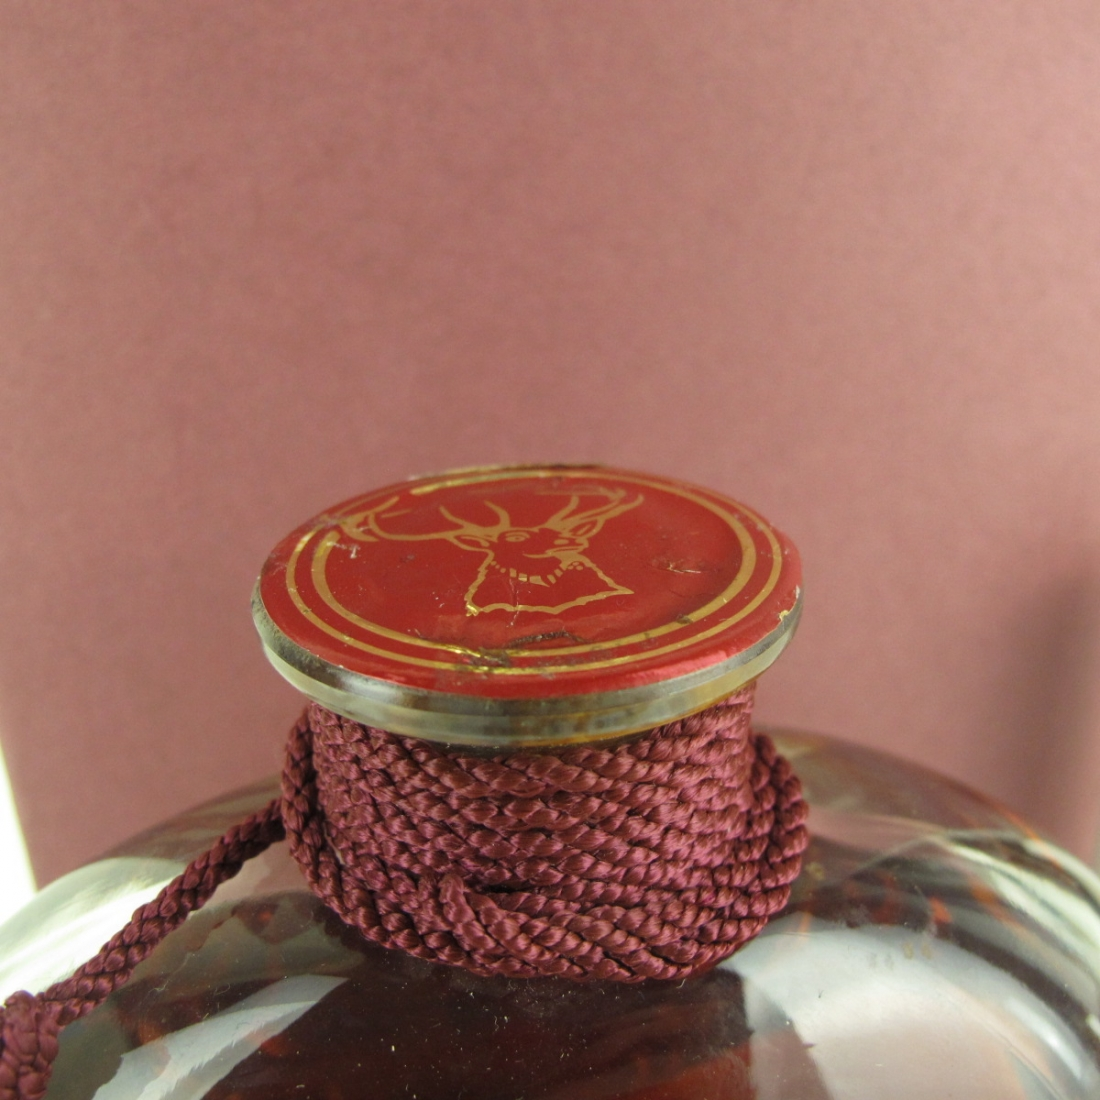 MacPhail's 30 Year Old Decanter